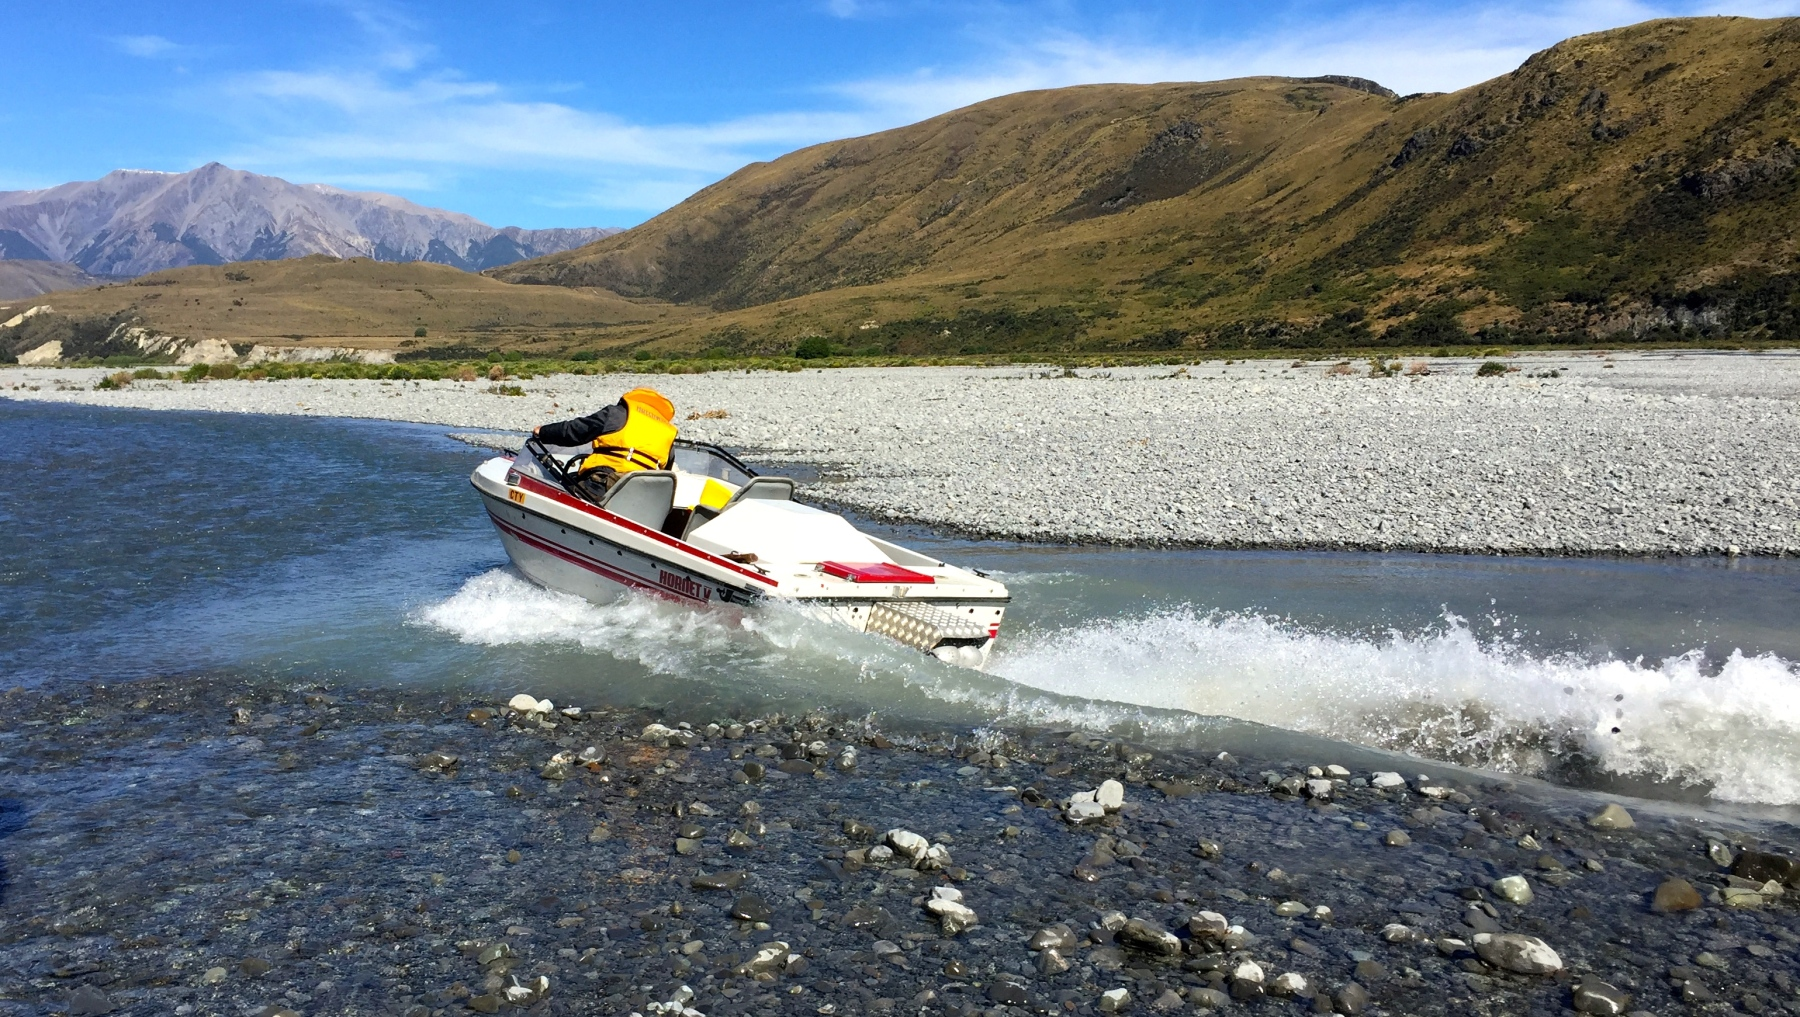 Wetlander Jet Boat going through rocky shallow water